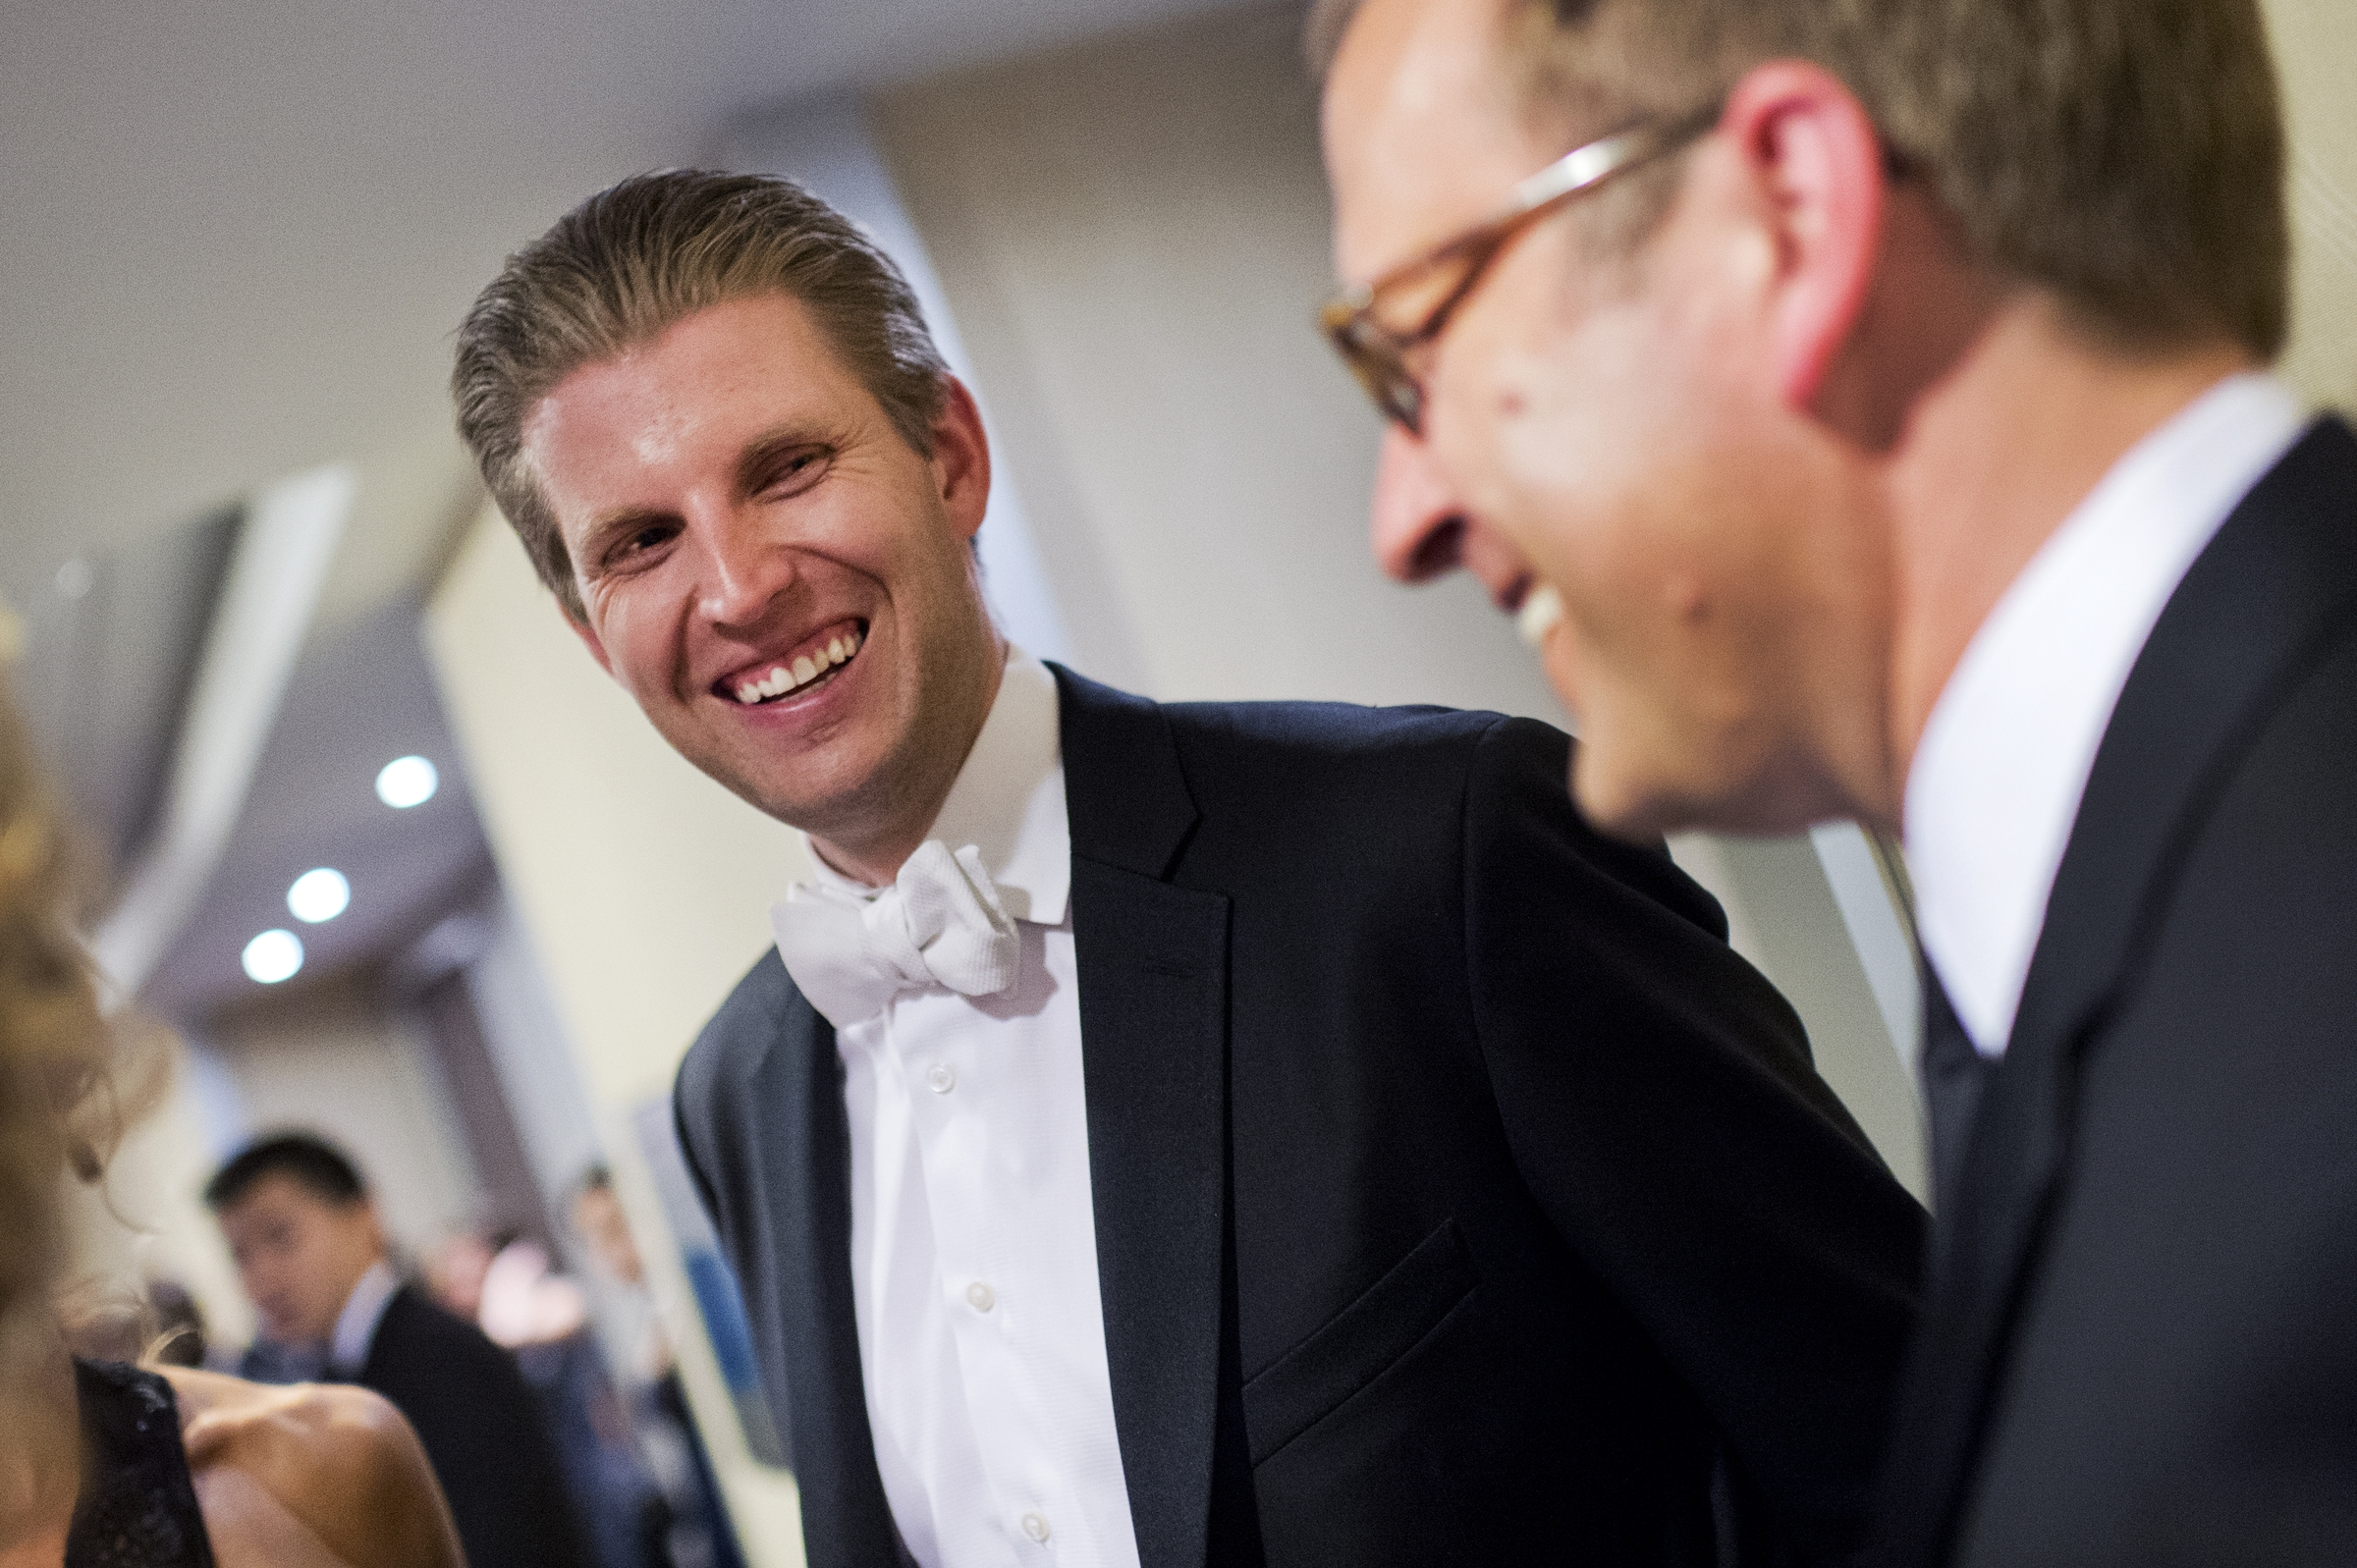 Eric Trump, center, son of Republican front-runner Donald Trump, talks with Jonathan Karl of ABC News outside the Yahoo/ABC News party on Saturday. (Photo By Tom Williams/CQ Roll Call)